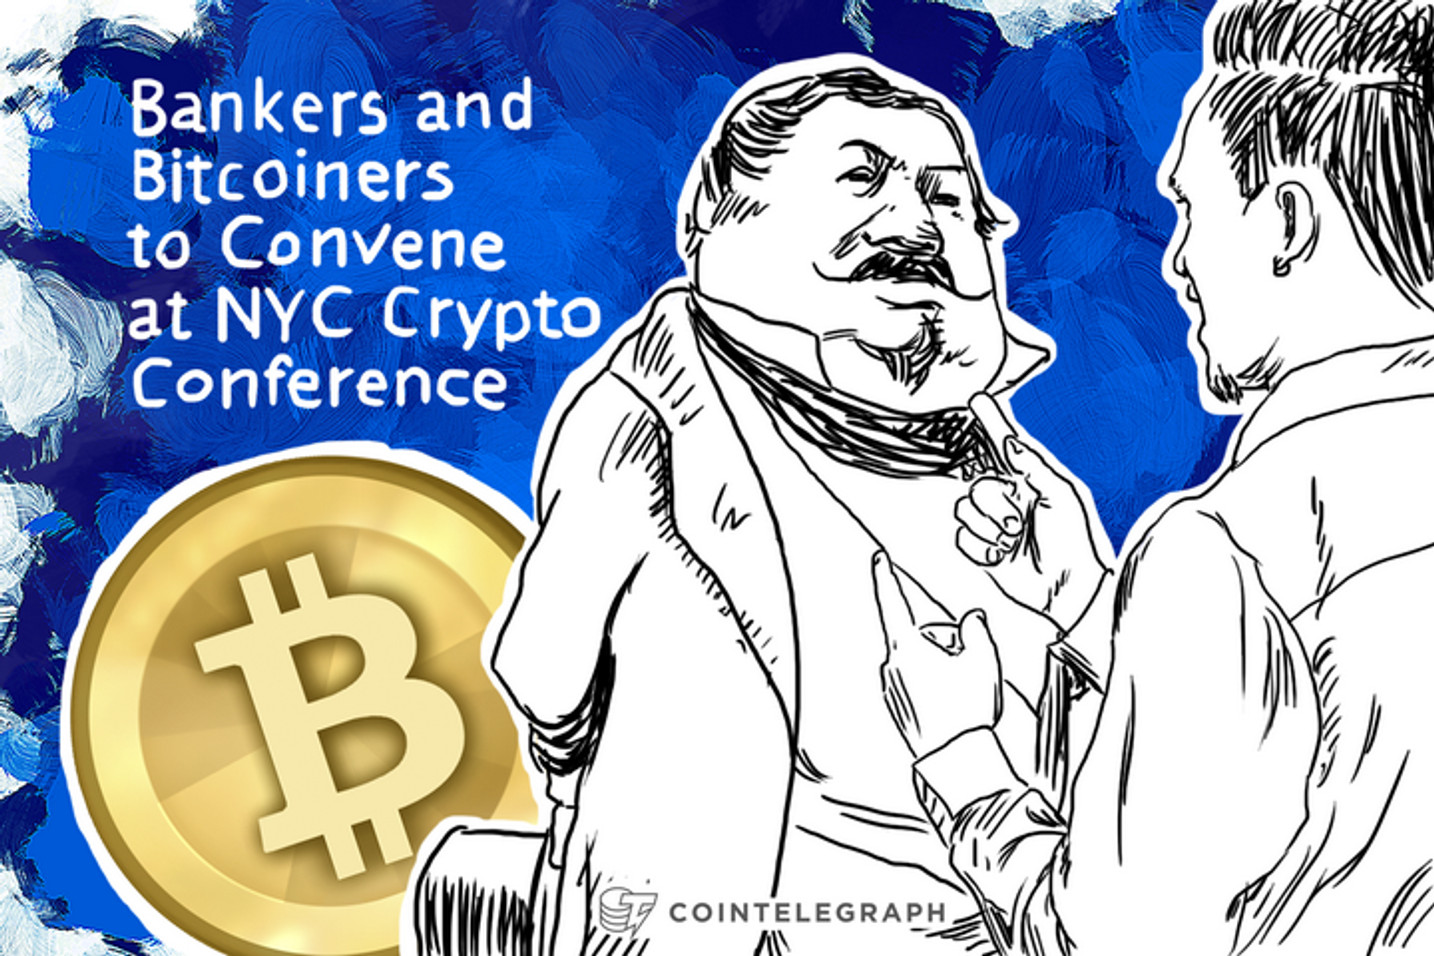 Bankers and Bitcoiners to Convene at NYC Crypto Conference